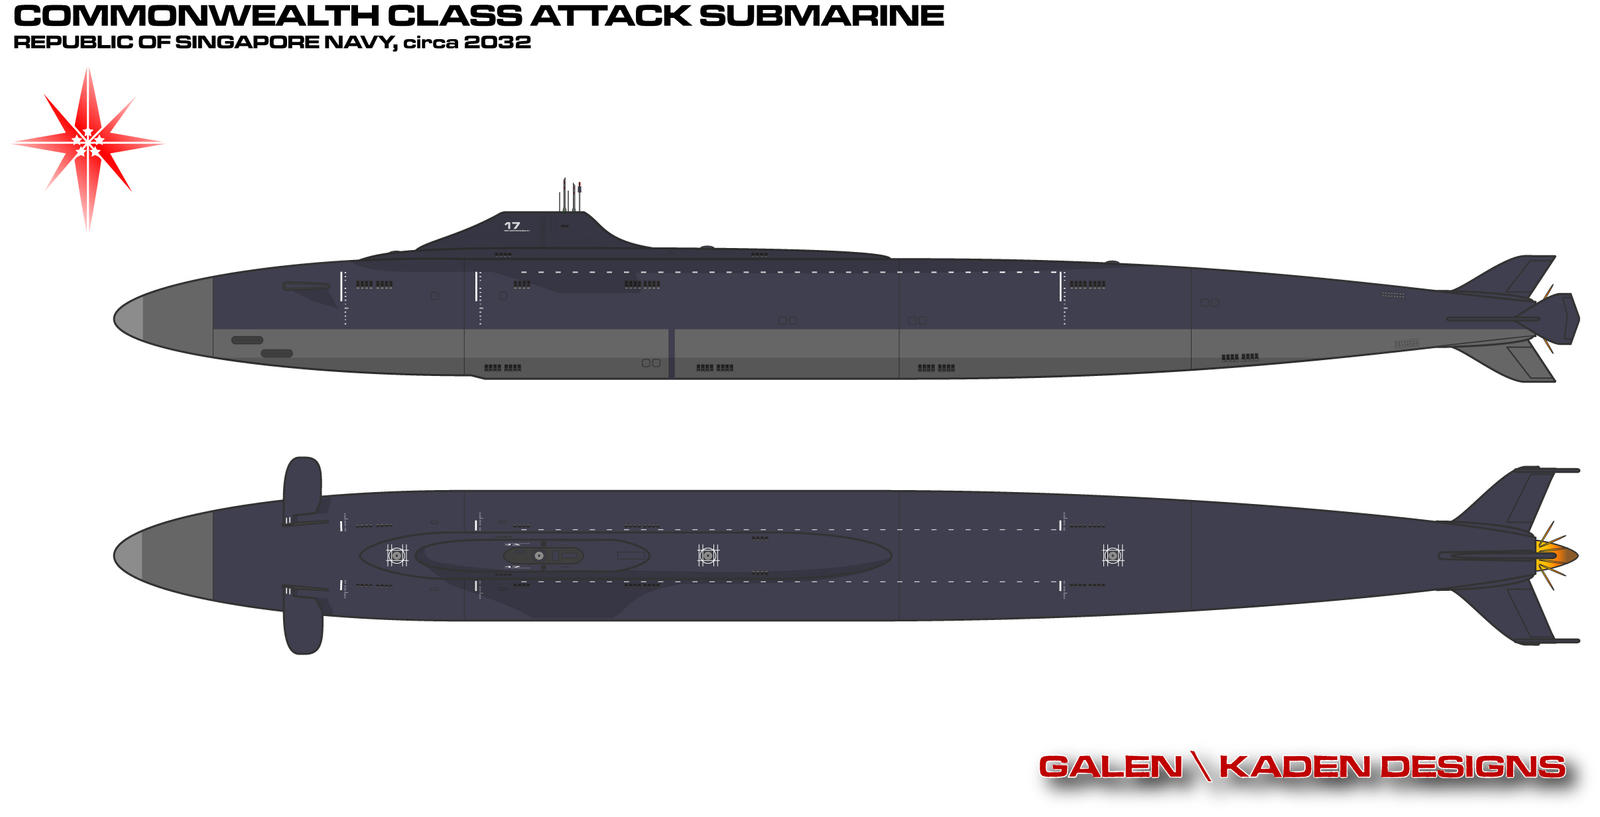 Rufetic Federation Armed Forces Commonwealth_class_submarine_by_galen82